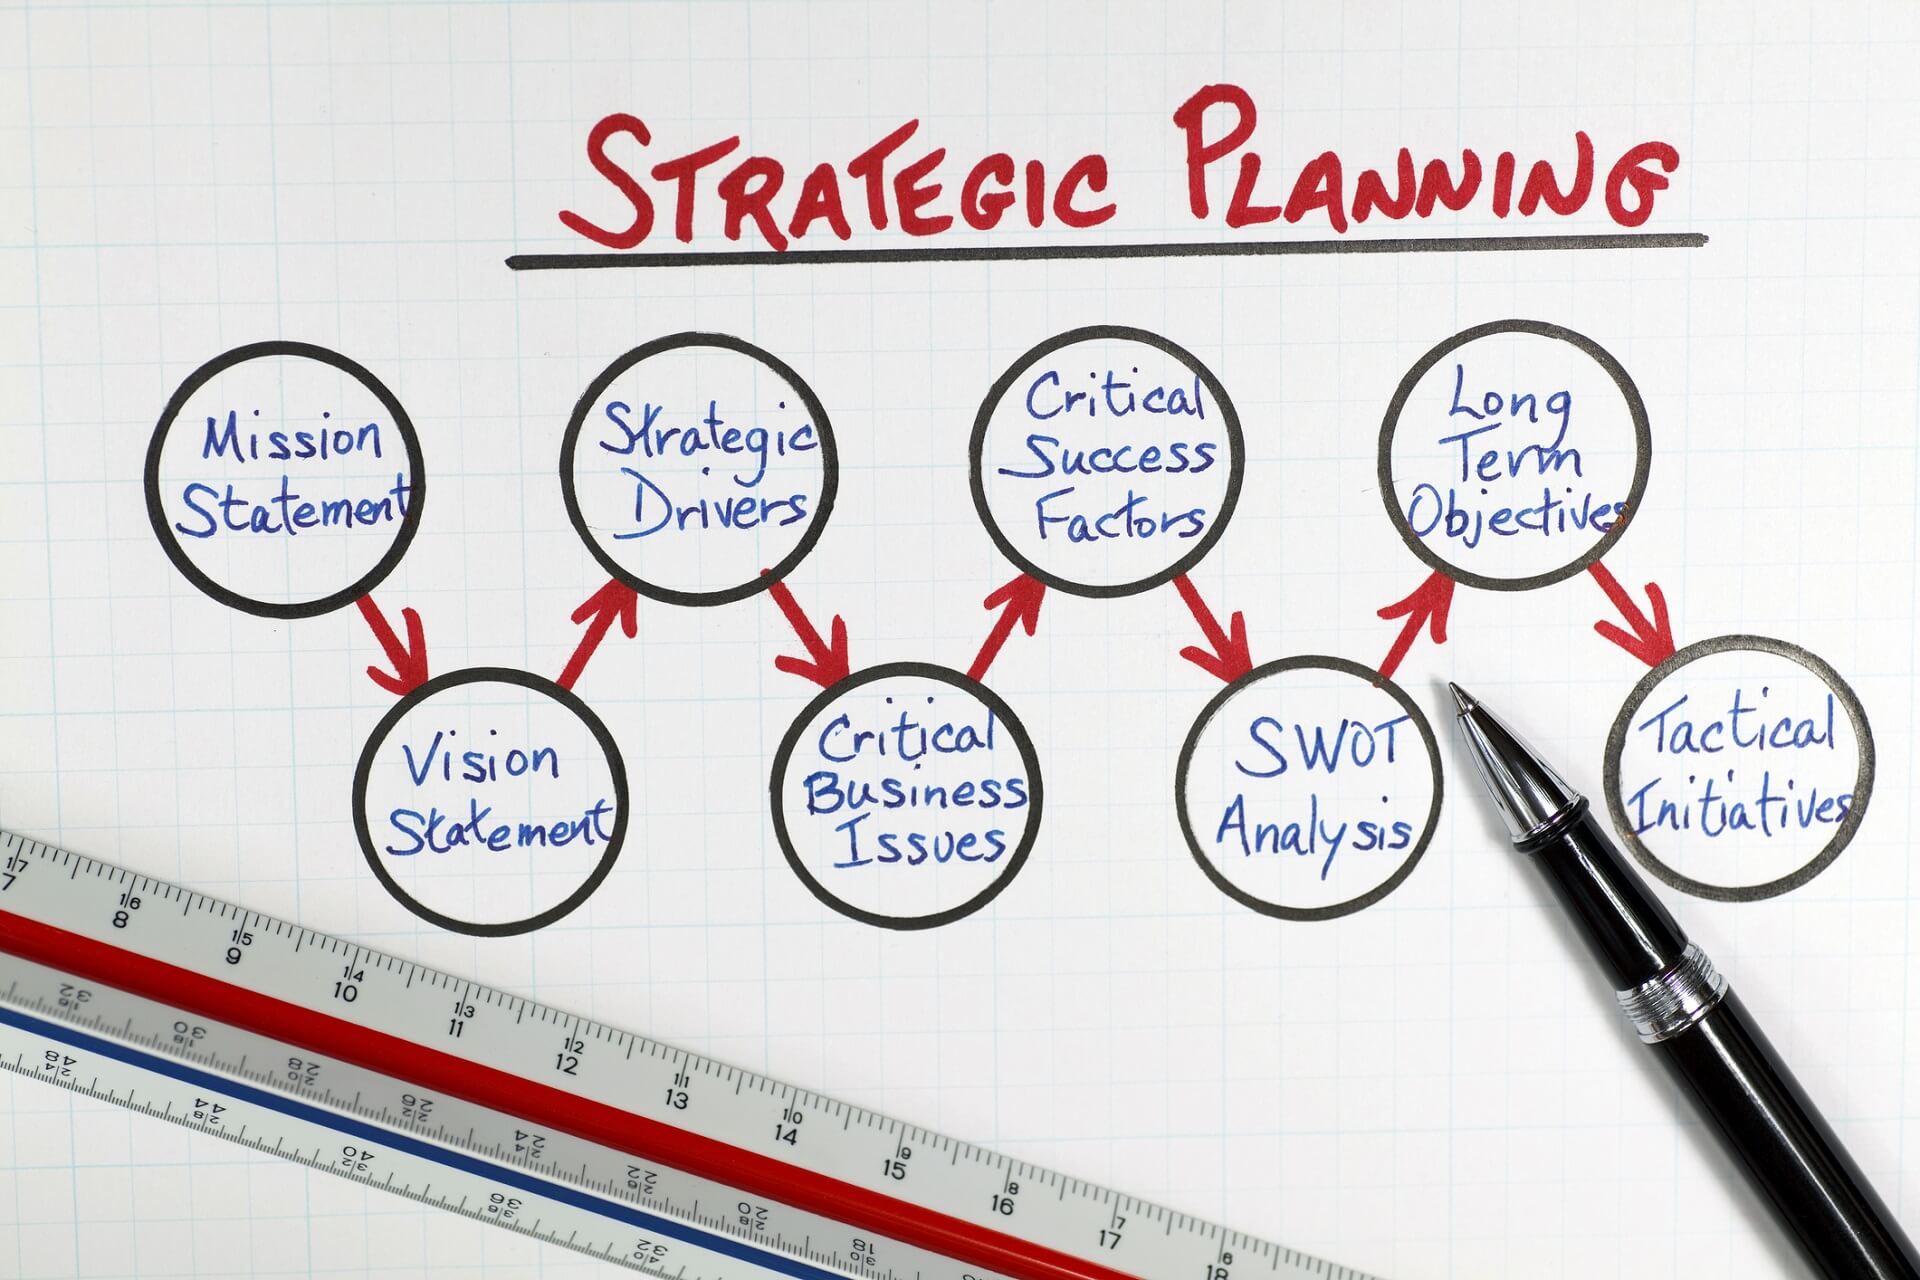 Strategic Planning Models: How to Put Strategic Planning into Action